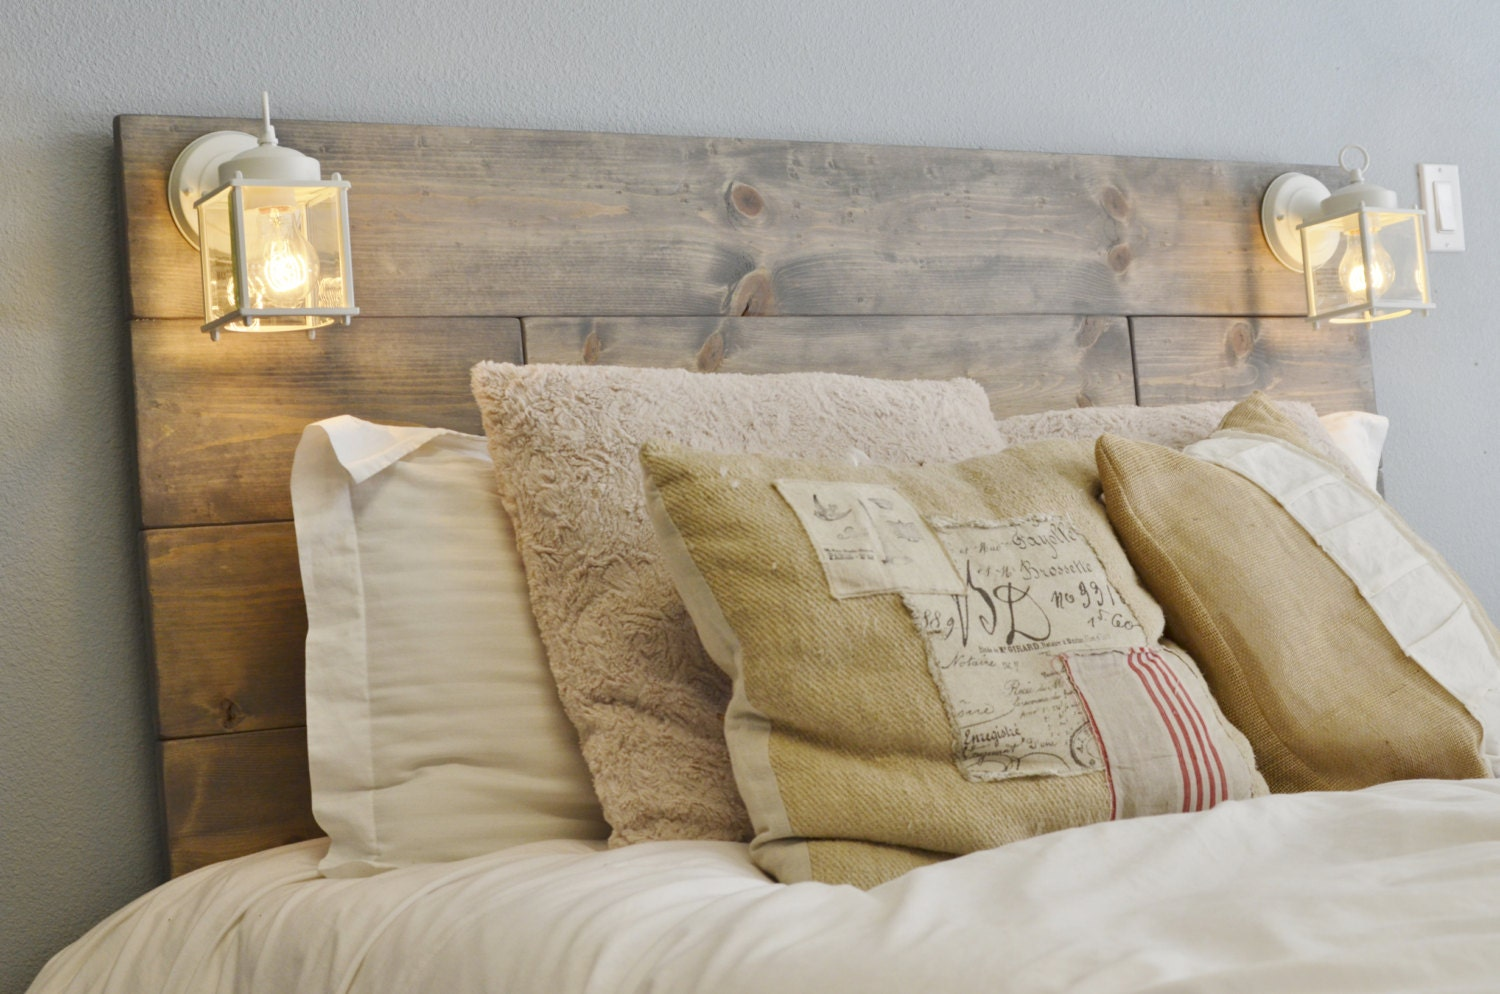 Rustic Headboards wood headboard with white built in lighting-cordoba